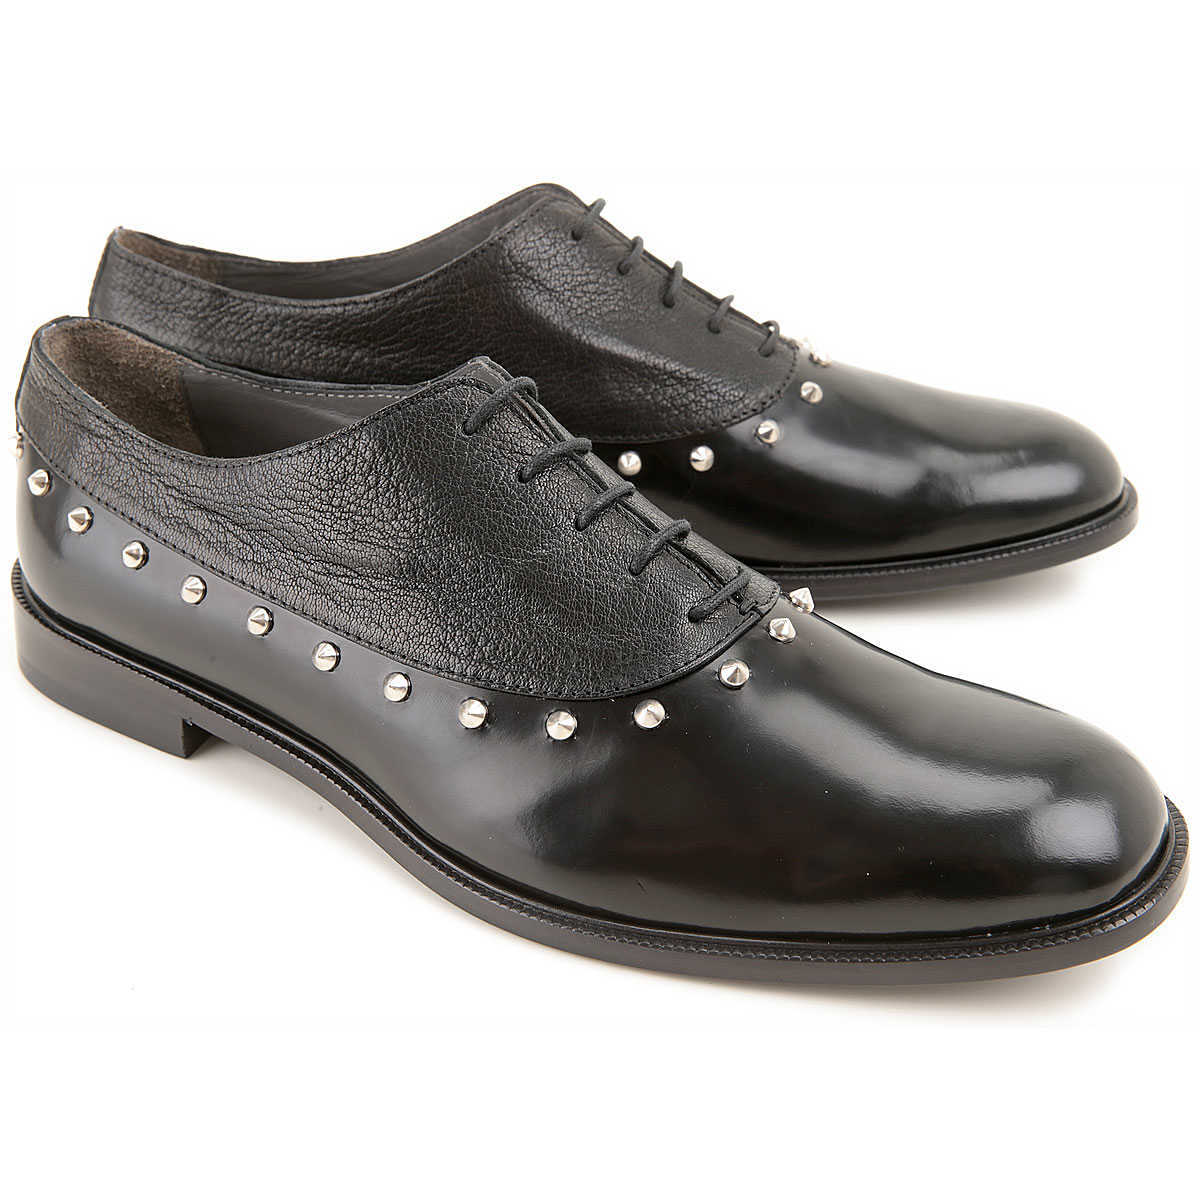 Giacomorelli Lace Up Shoes for Men Oxfords Derbies and Brogues On Sale - GOOFASH